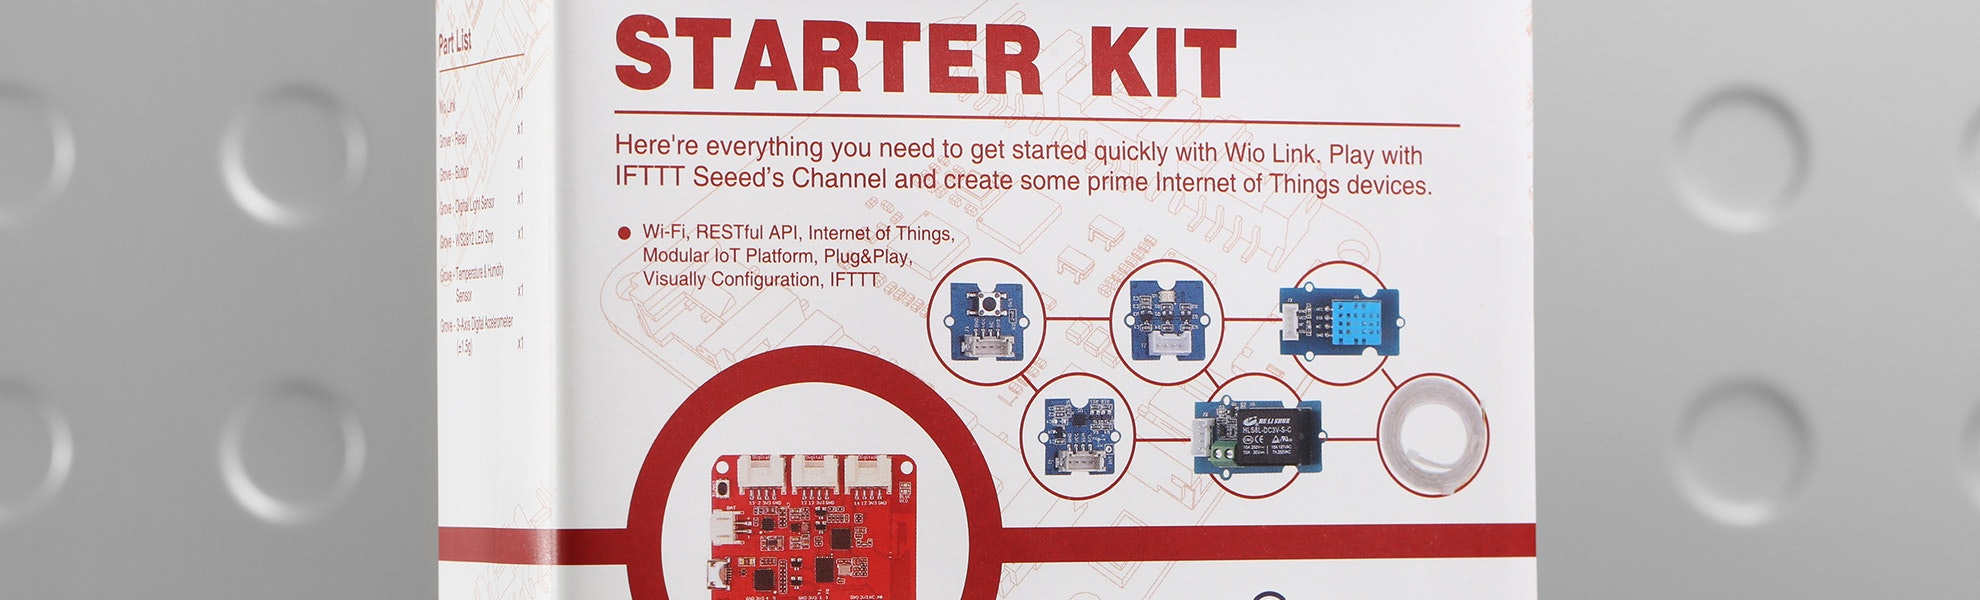 SEEED Wio Link Starter Kit for IoT